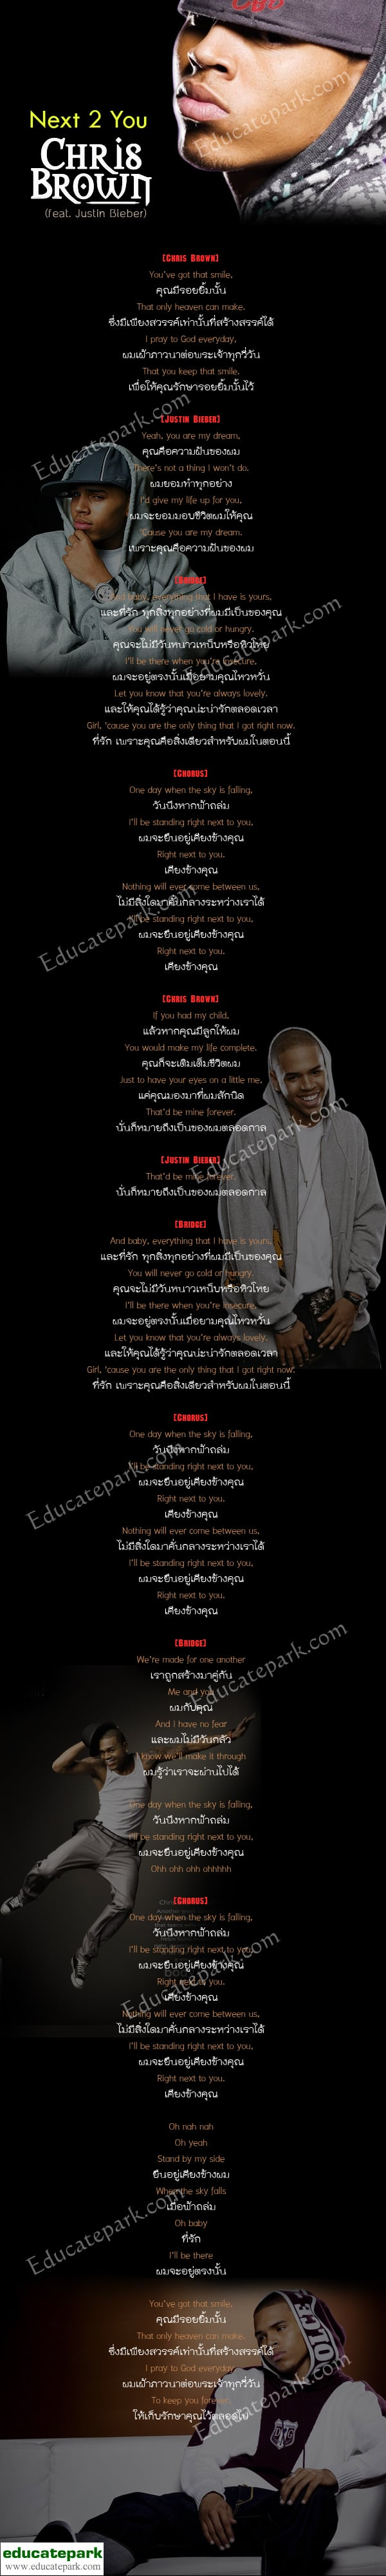 แปลเพลง Next To You - Chris Brown ft. Justin Bieber